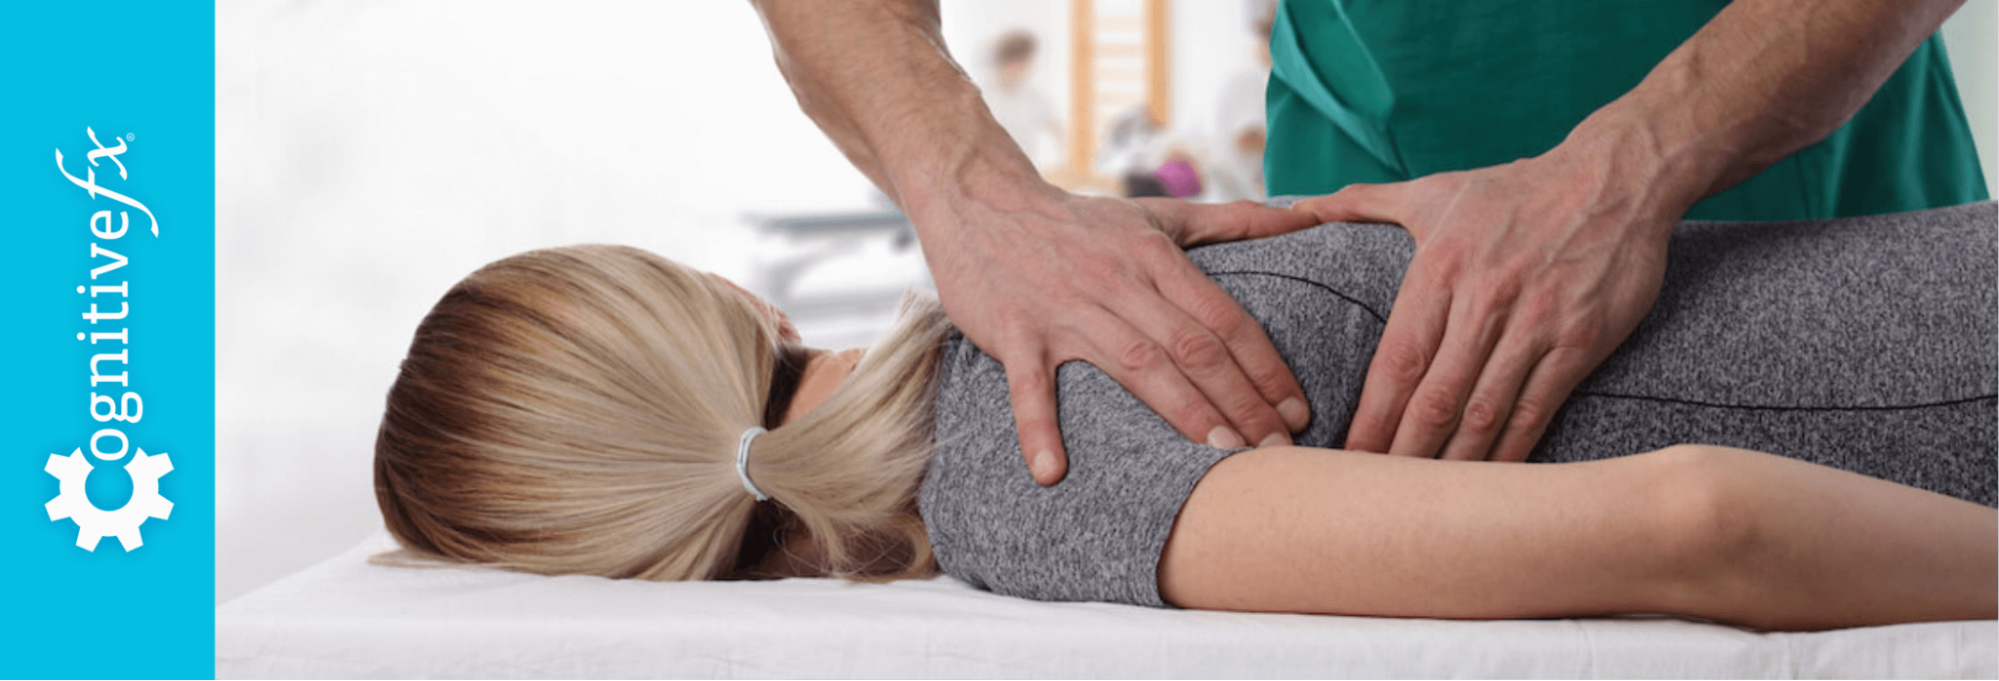 Can a Chiropractor Help with Post-Concussion Syndrome?